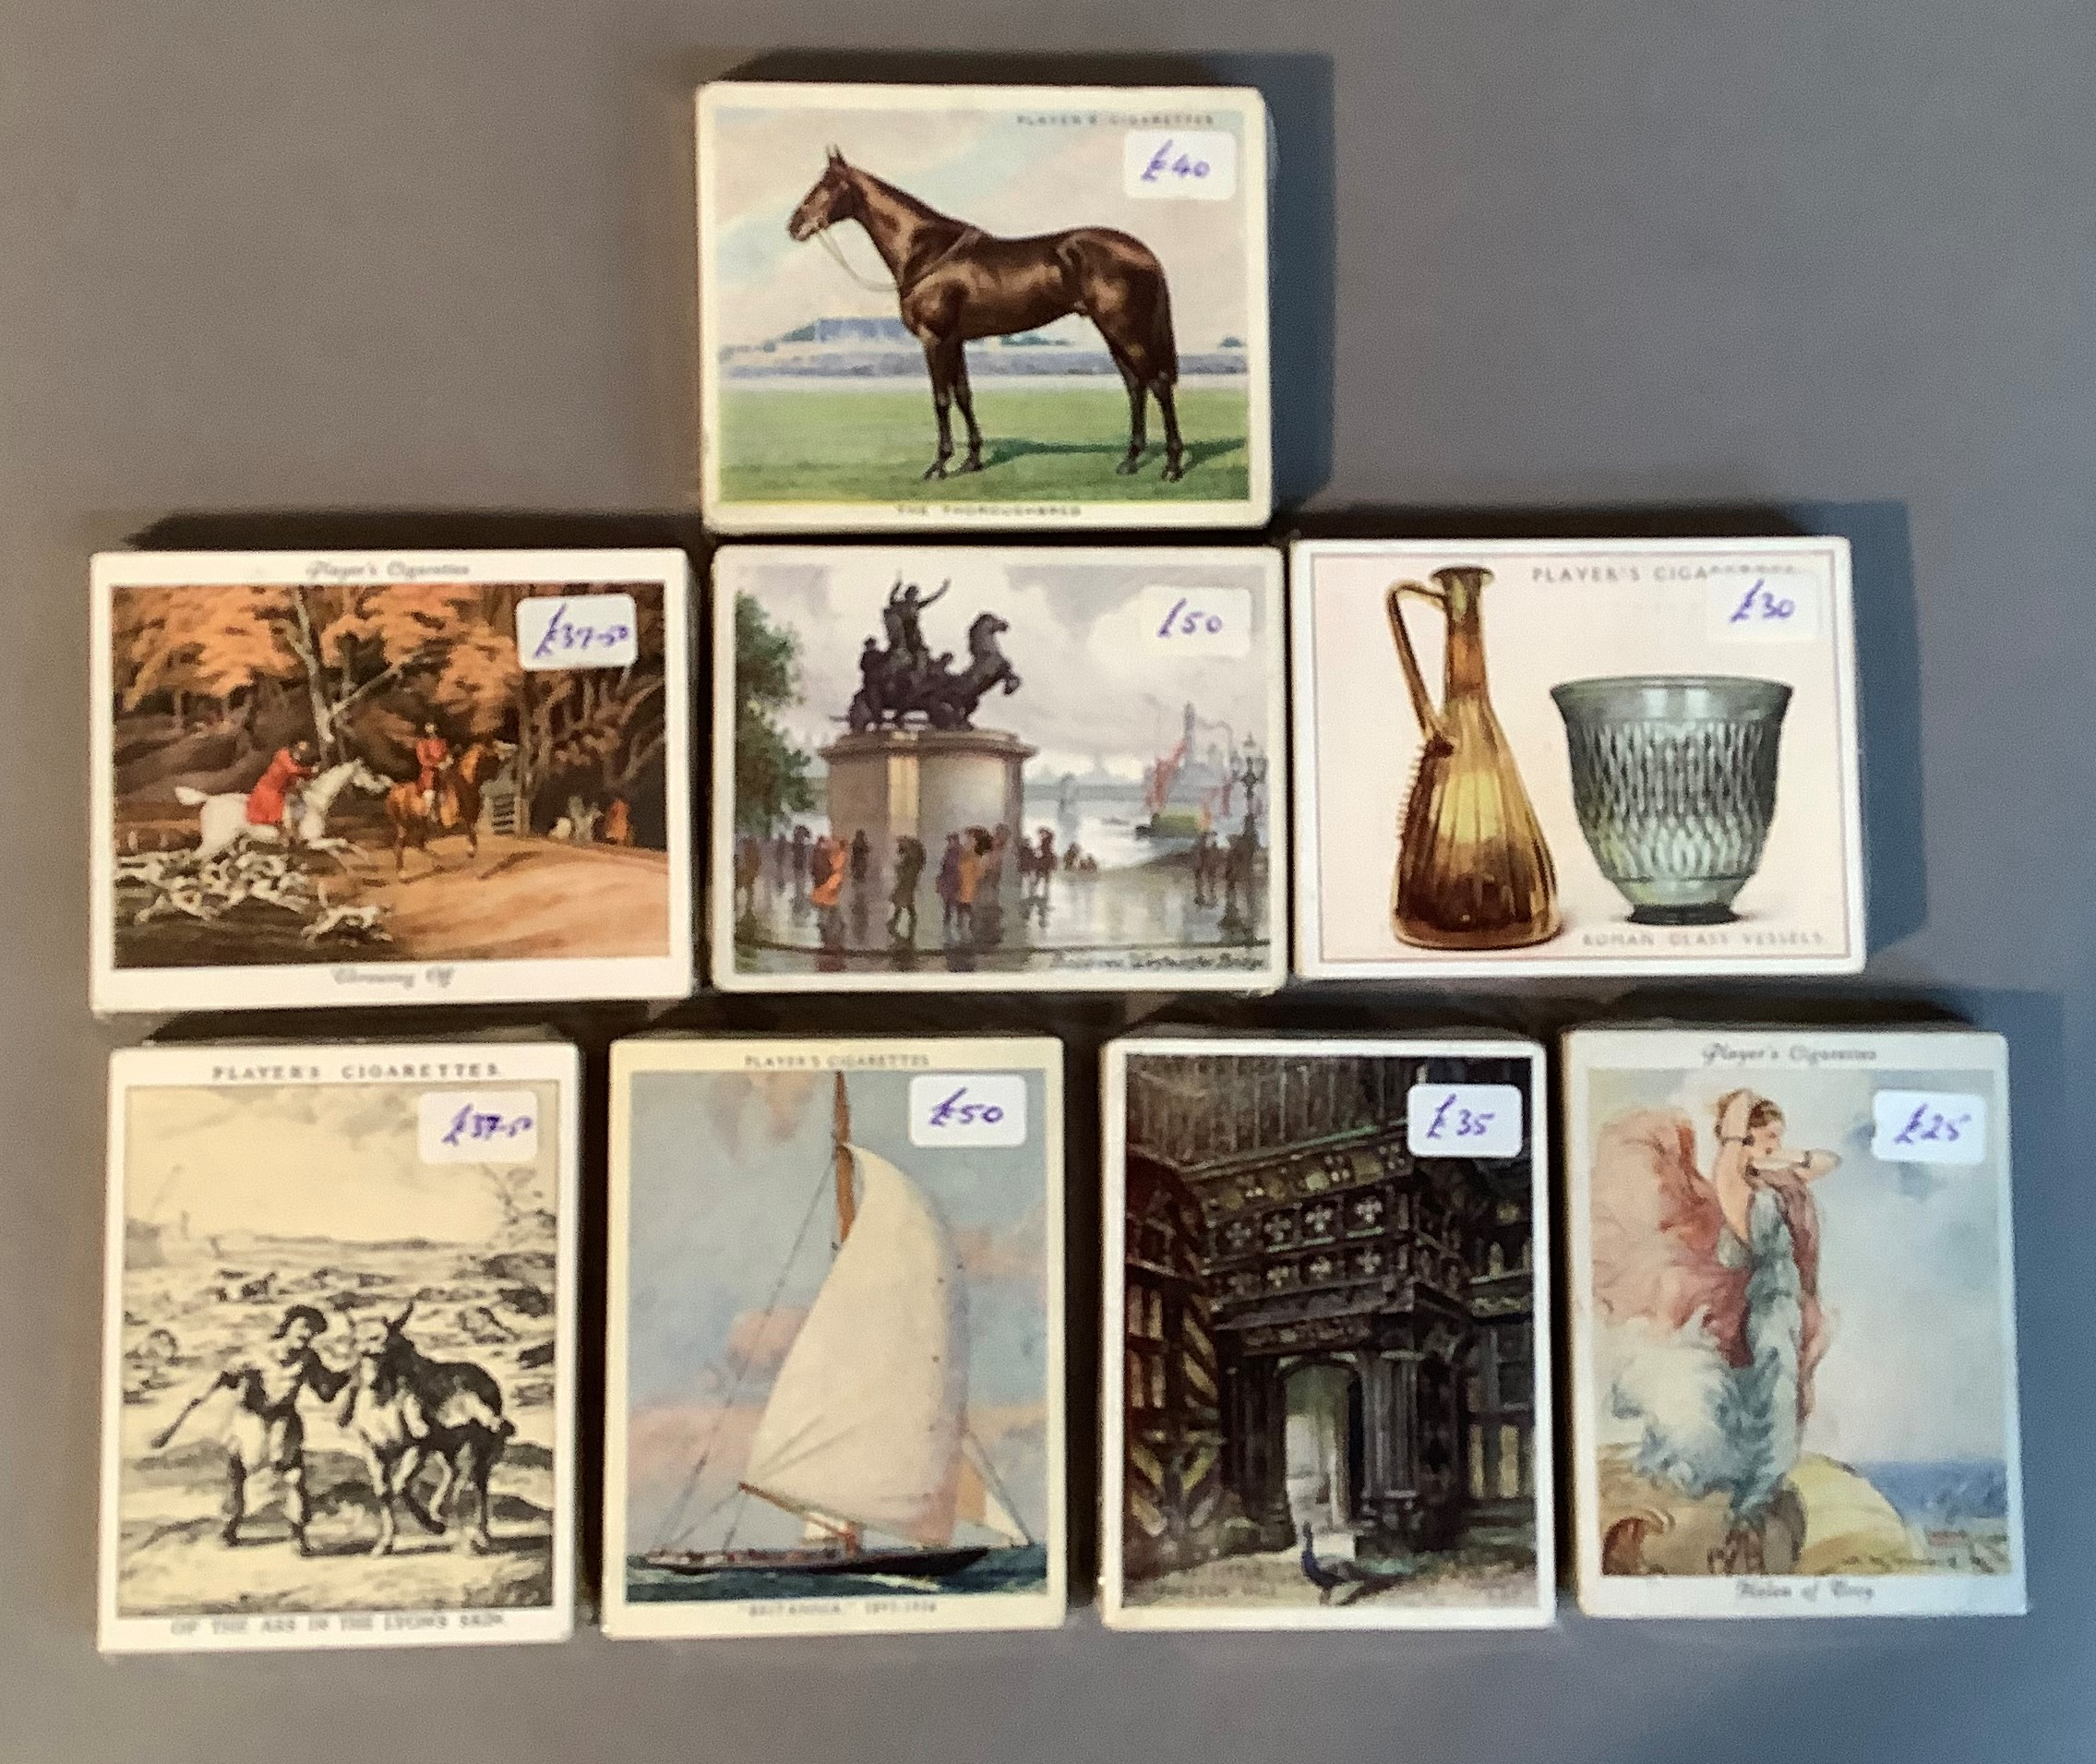 Cigarette cards, John Player & Sons, to include Picturesque London (25), Portals of the Past (25),